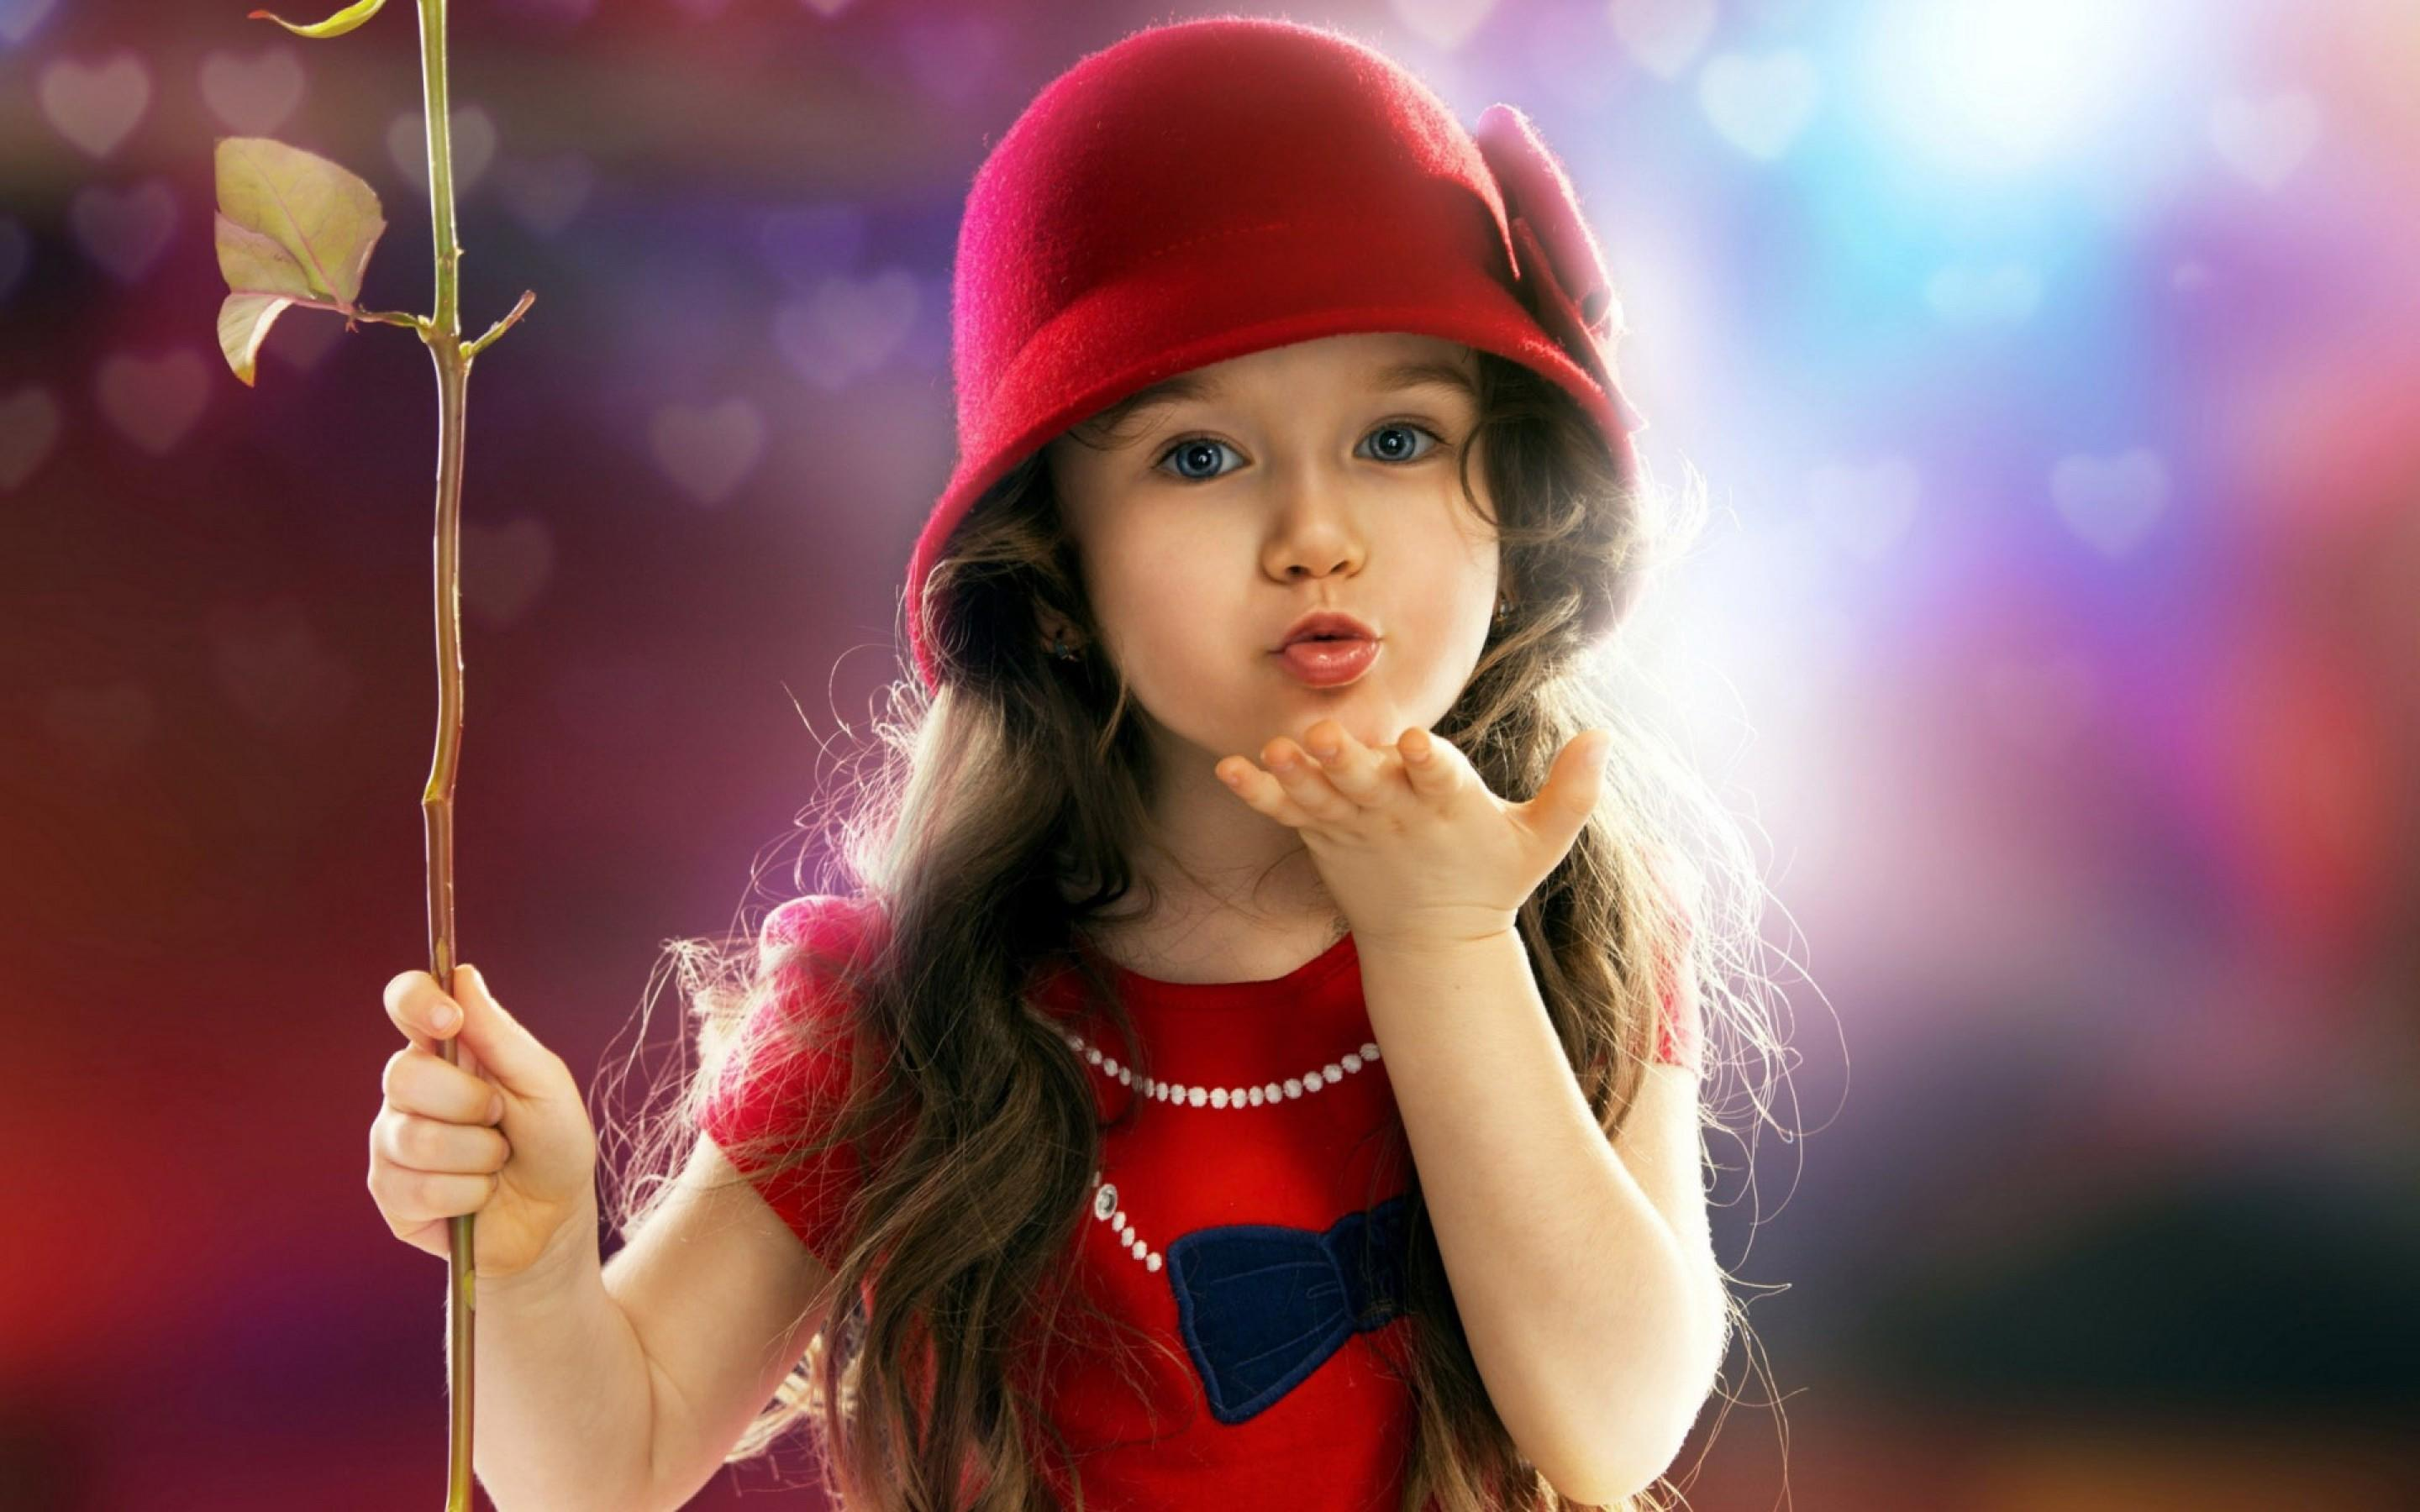 327 little girl hd wallpapers | background images - wallpaper abyss